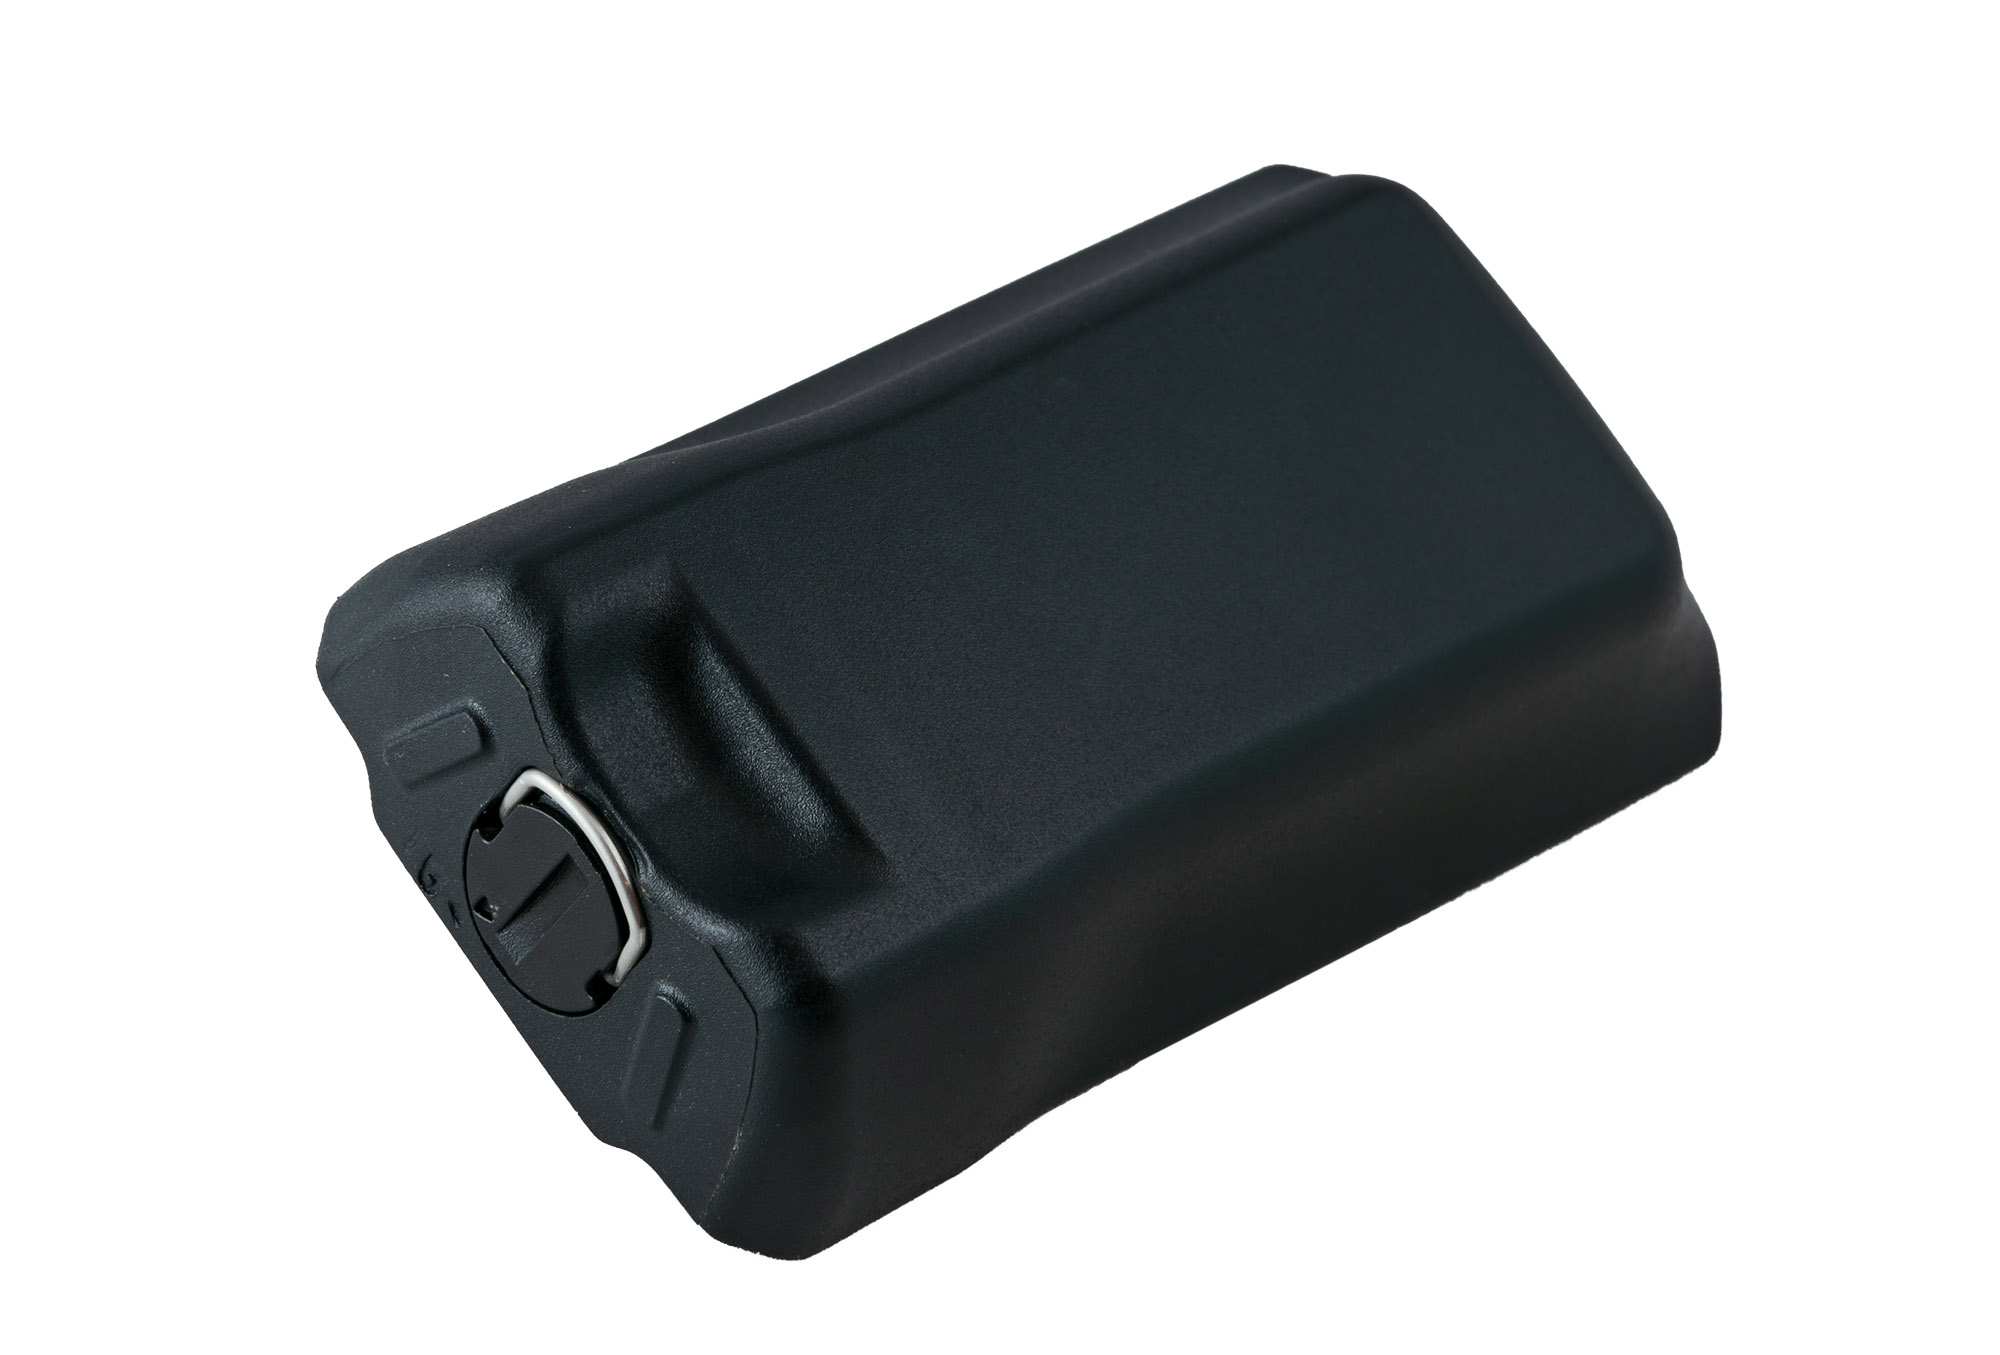 BLN-6L High Capacity Battery 5500mAh - 10pcs